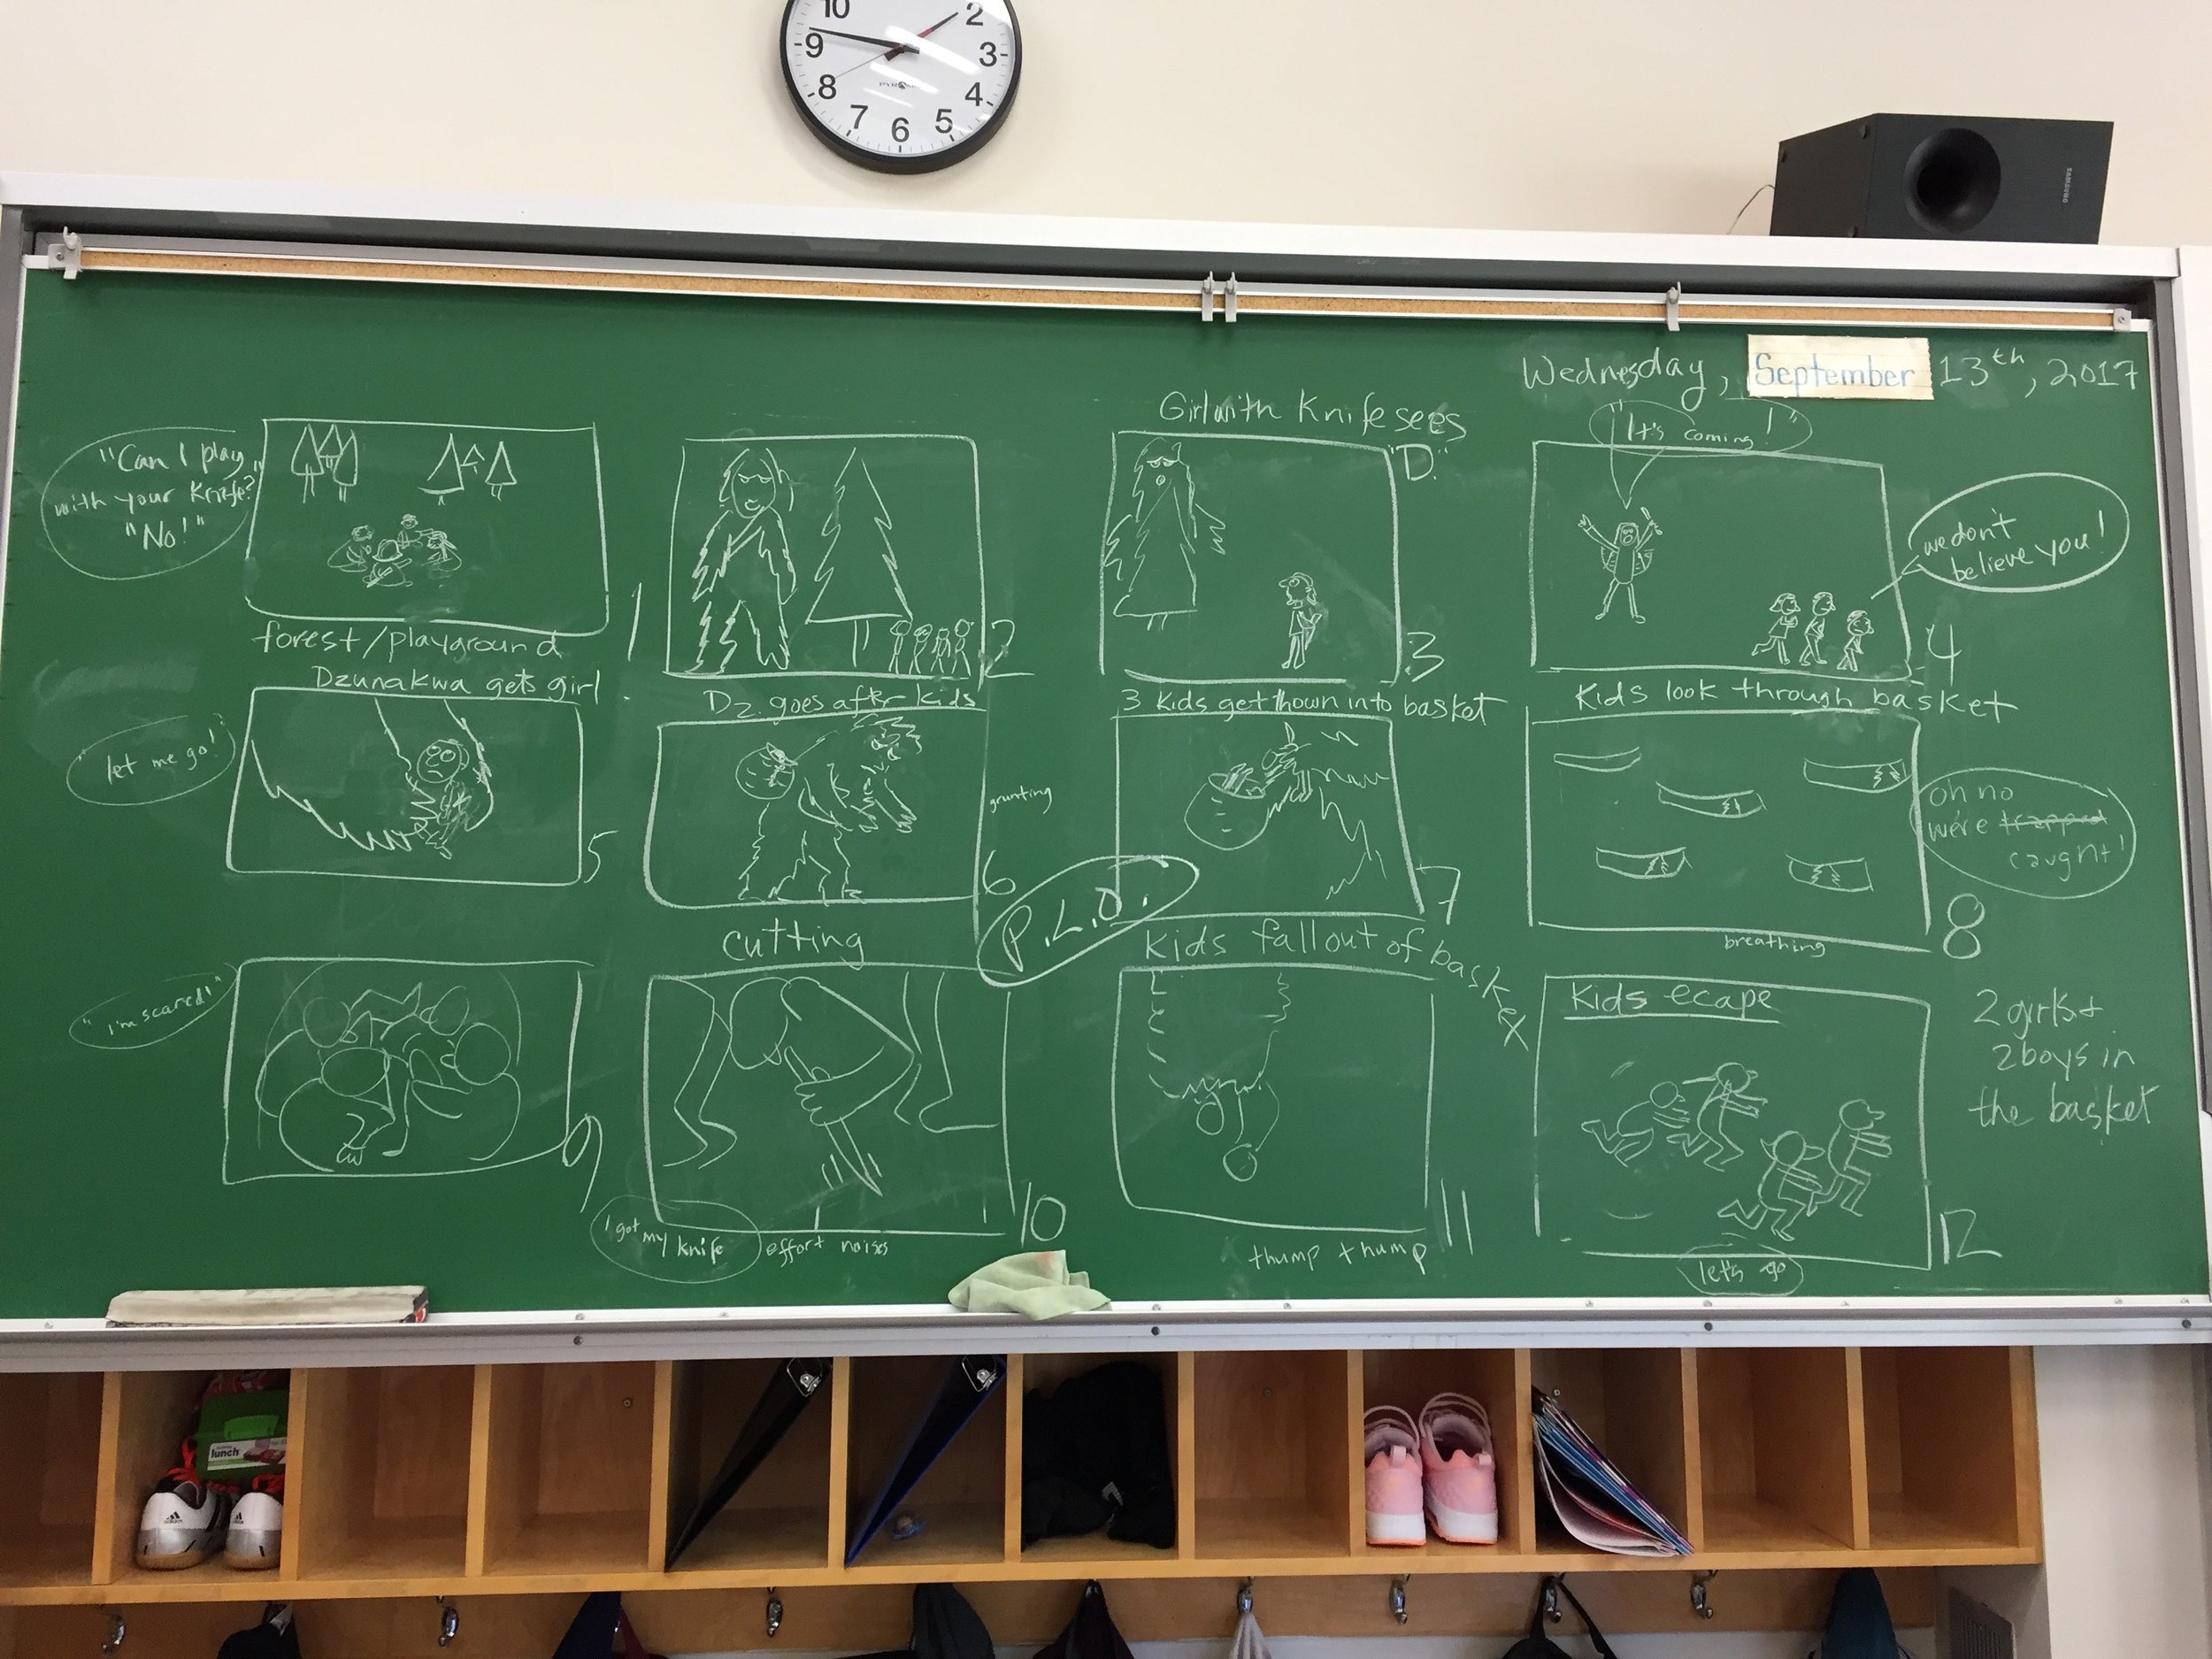 The story board for The Legend of the Dzunuk'aw